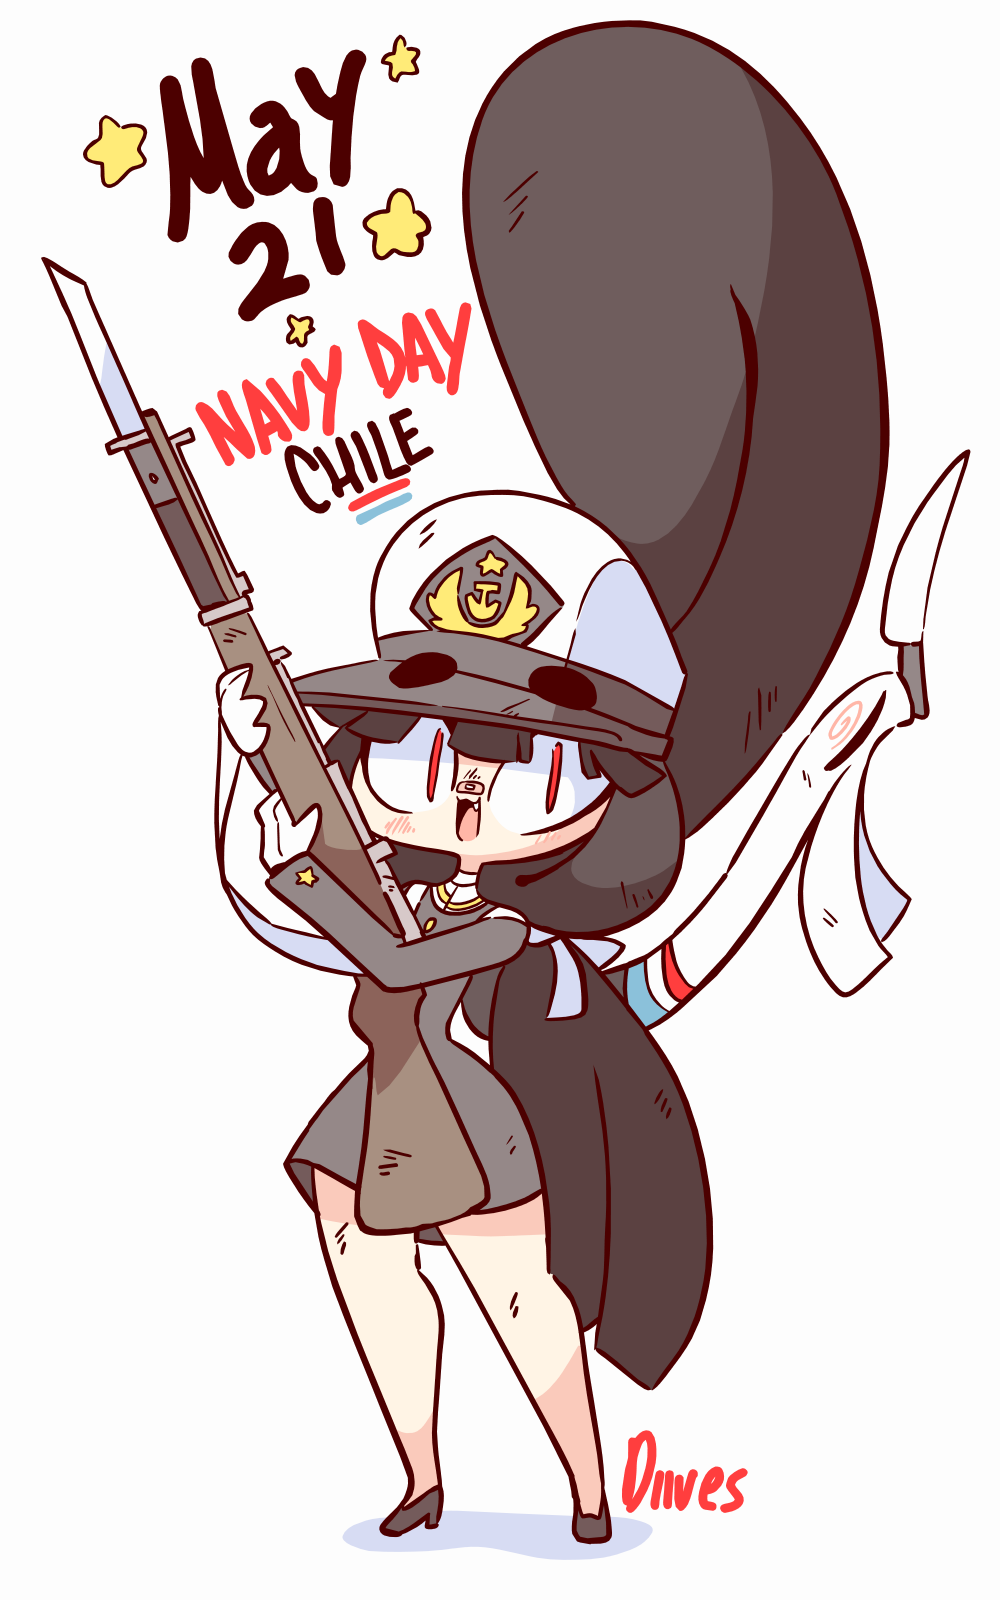 Navy Day - Chile 2021